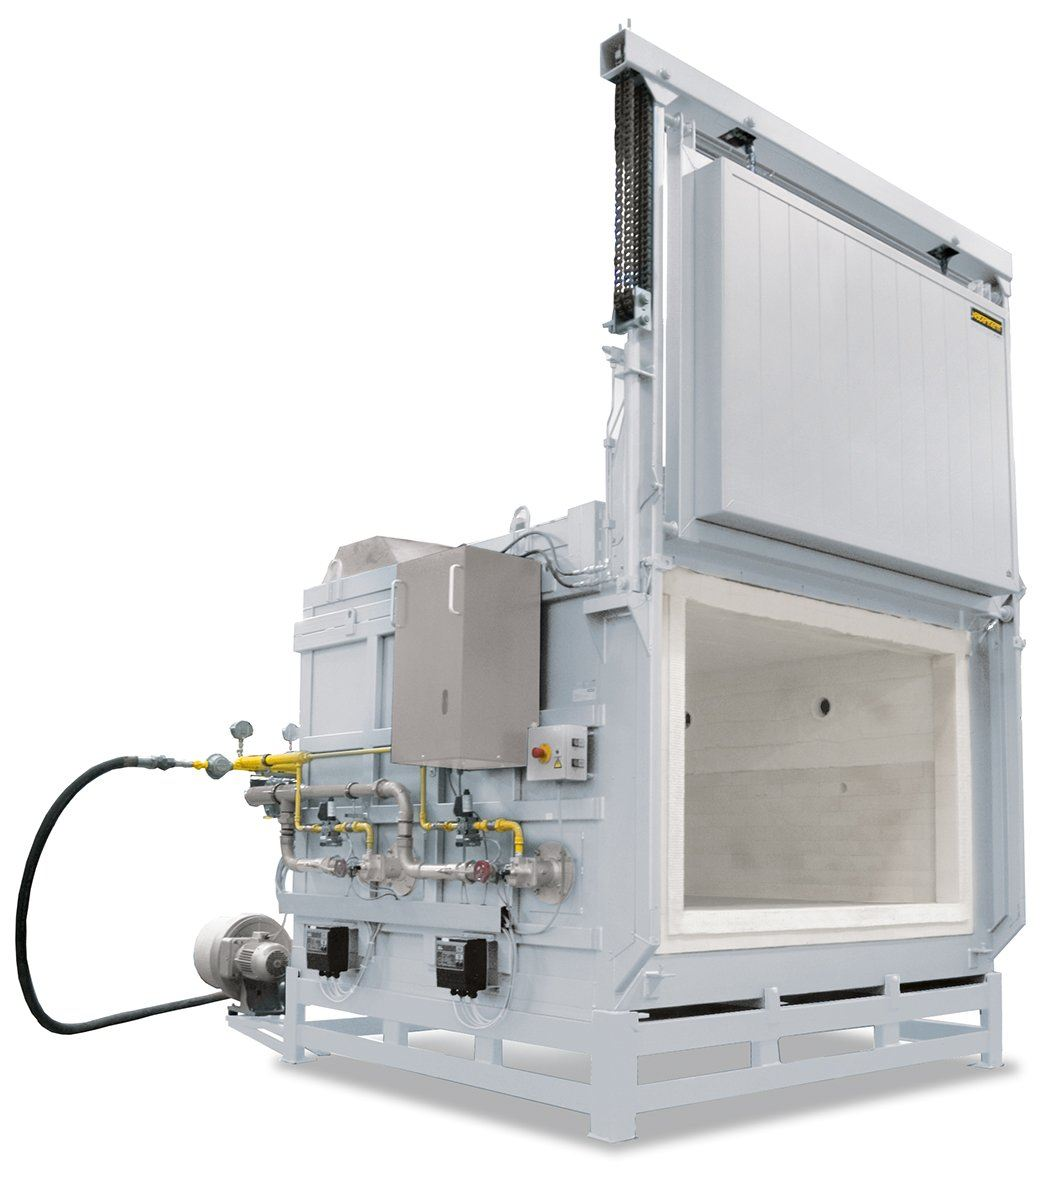 Chamber furnaces, gas fired Chamber Furnaces Nabertherm Furnace Laboratory Equipment Facility Malaysia, Selangor, Kuala Lumpur (KL) Supplier, Suppliers, Supply, Supplies | Obsnap Instruments Sdn Bhd